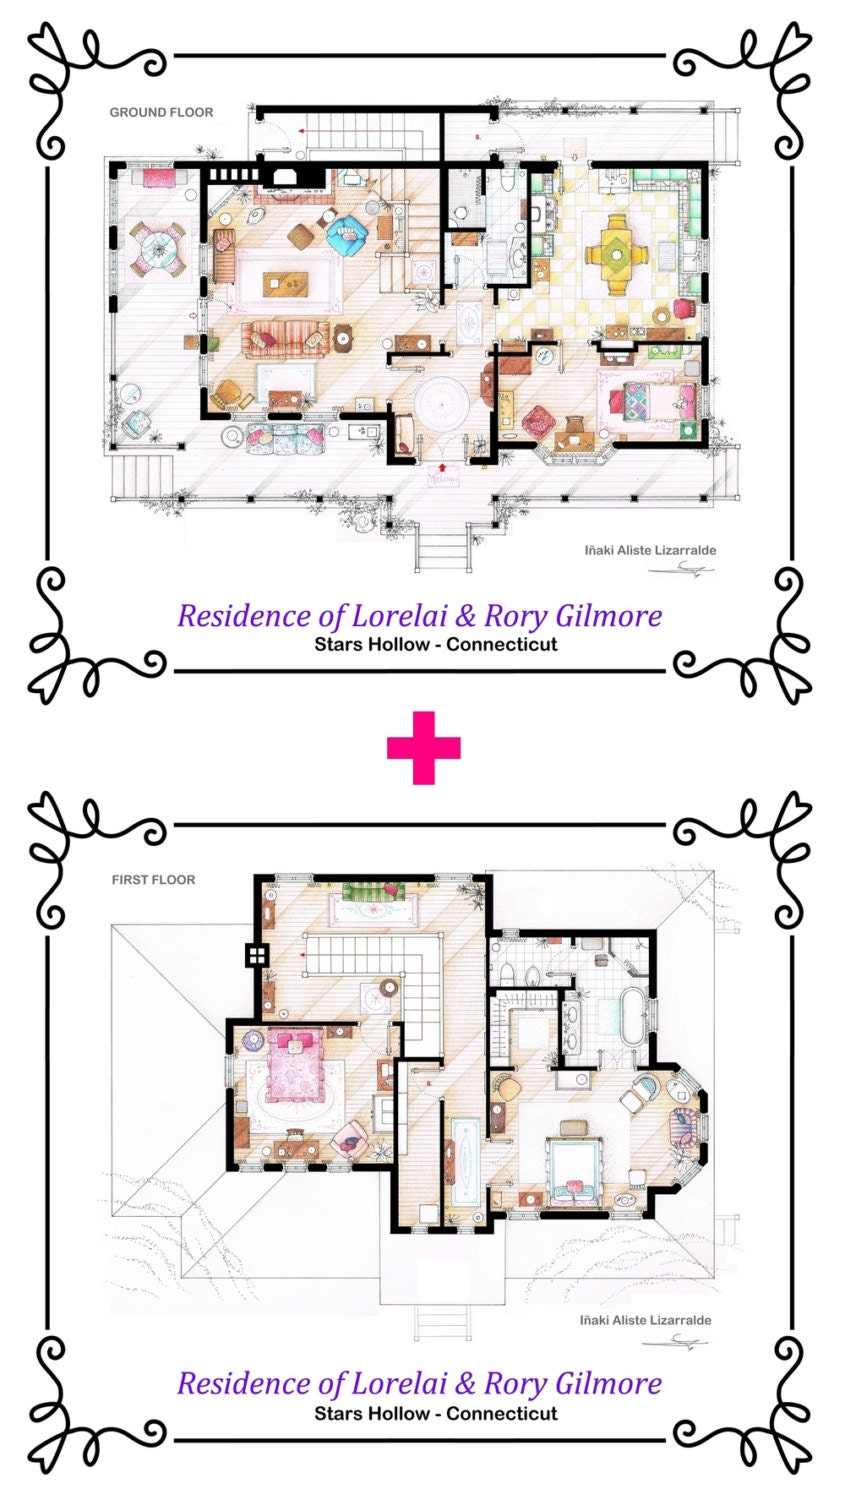 Lorelai And Rory Gilmore S House From Gilmore Girls Etsy